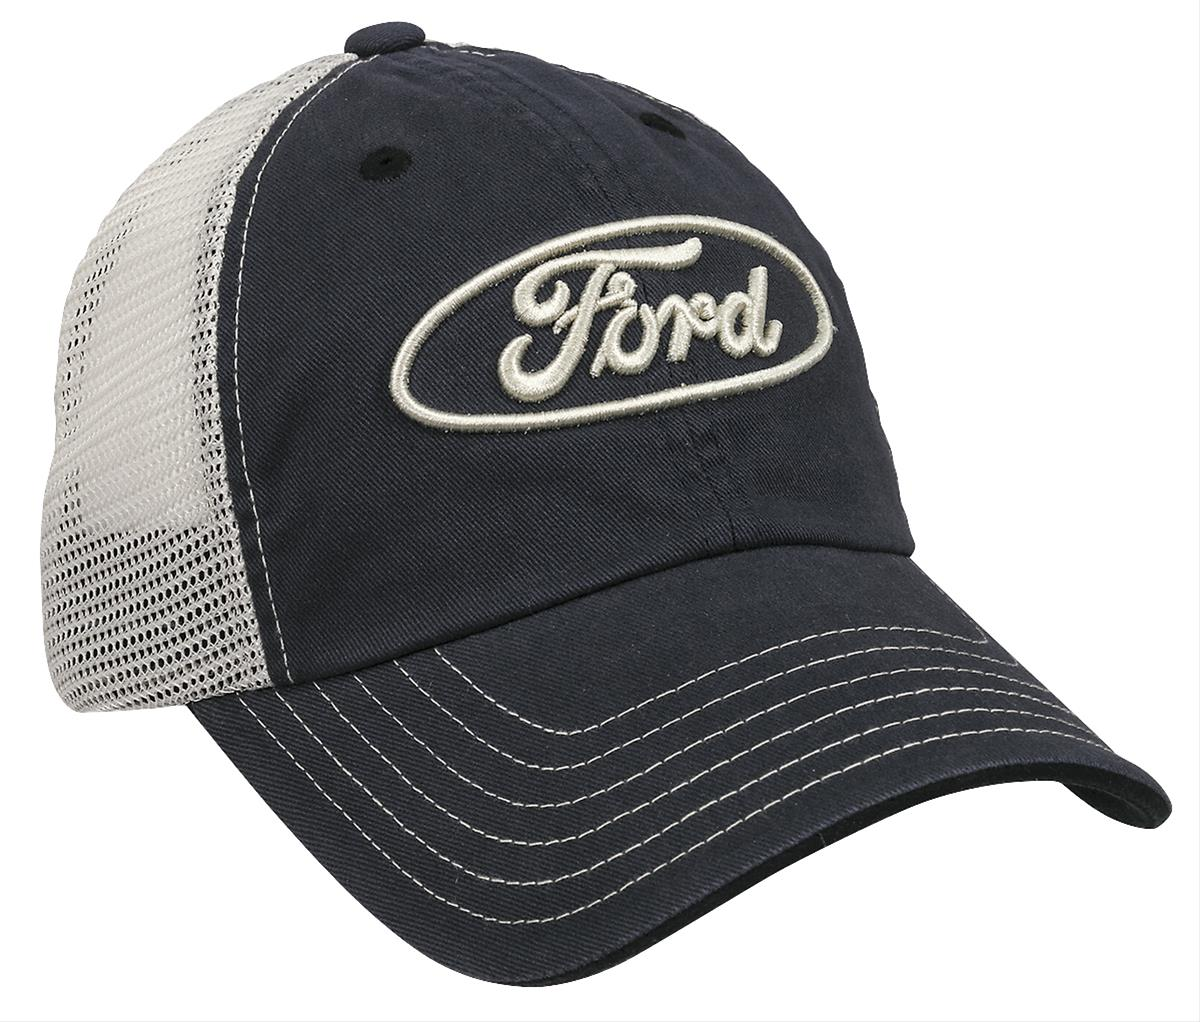 Ford Blue Oval Trucker Cap D7763 - Free Shipping on Orders Over  99 at  Summit Racing bd85a8c5dda